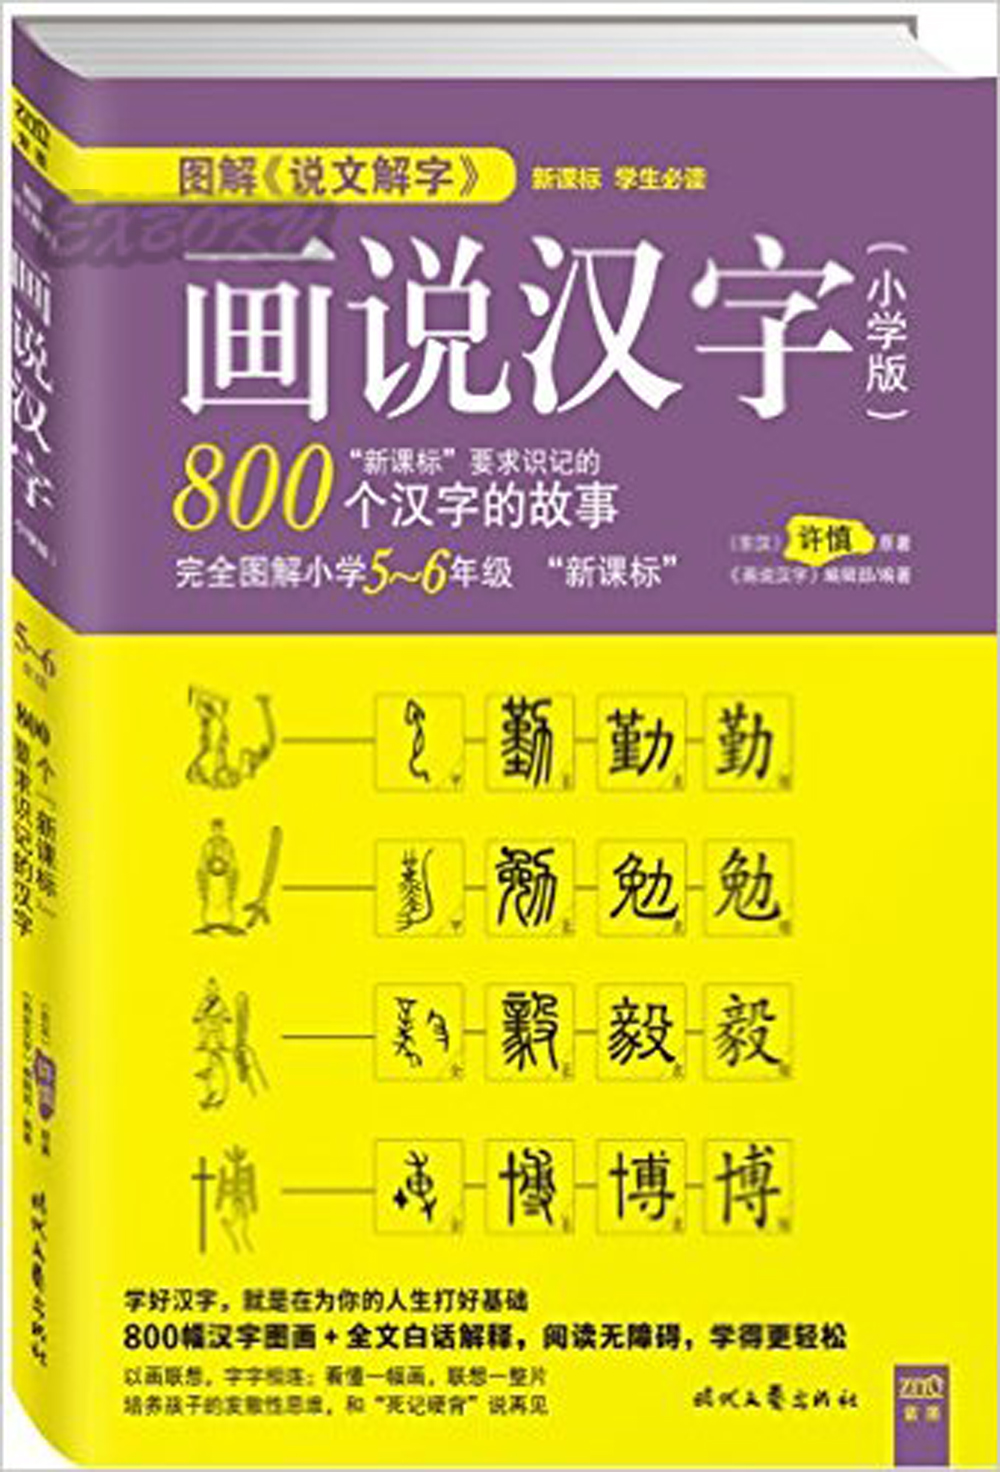 Chinese character picture books dictionary for advanced learning 800 Chinese character hanzi early Educational School textbook chinese stroke dictionary with 2500 common characters for learning pinyin making sentence language educational tool book